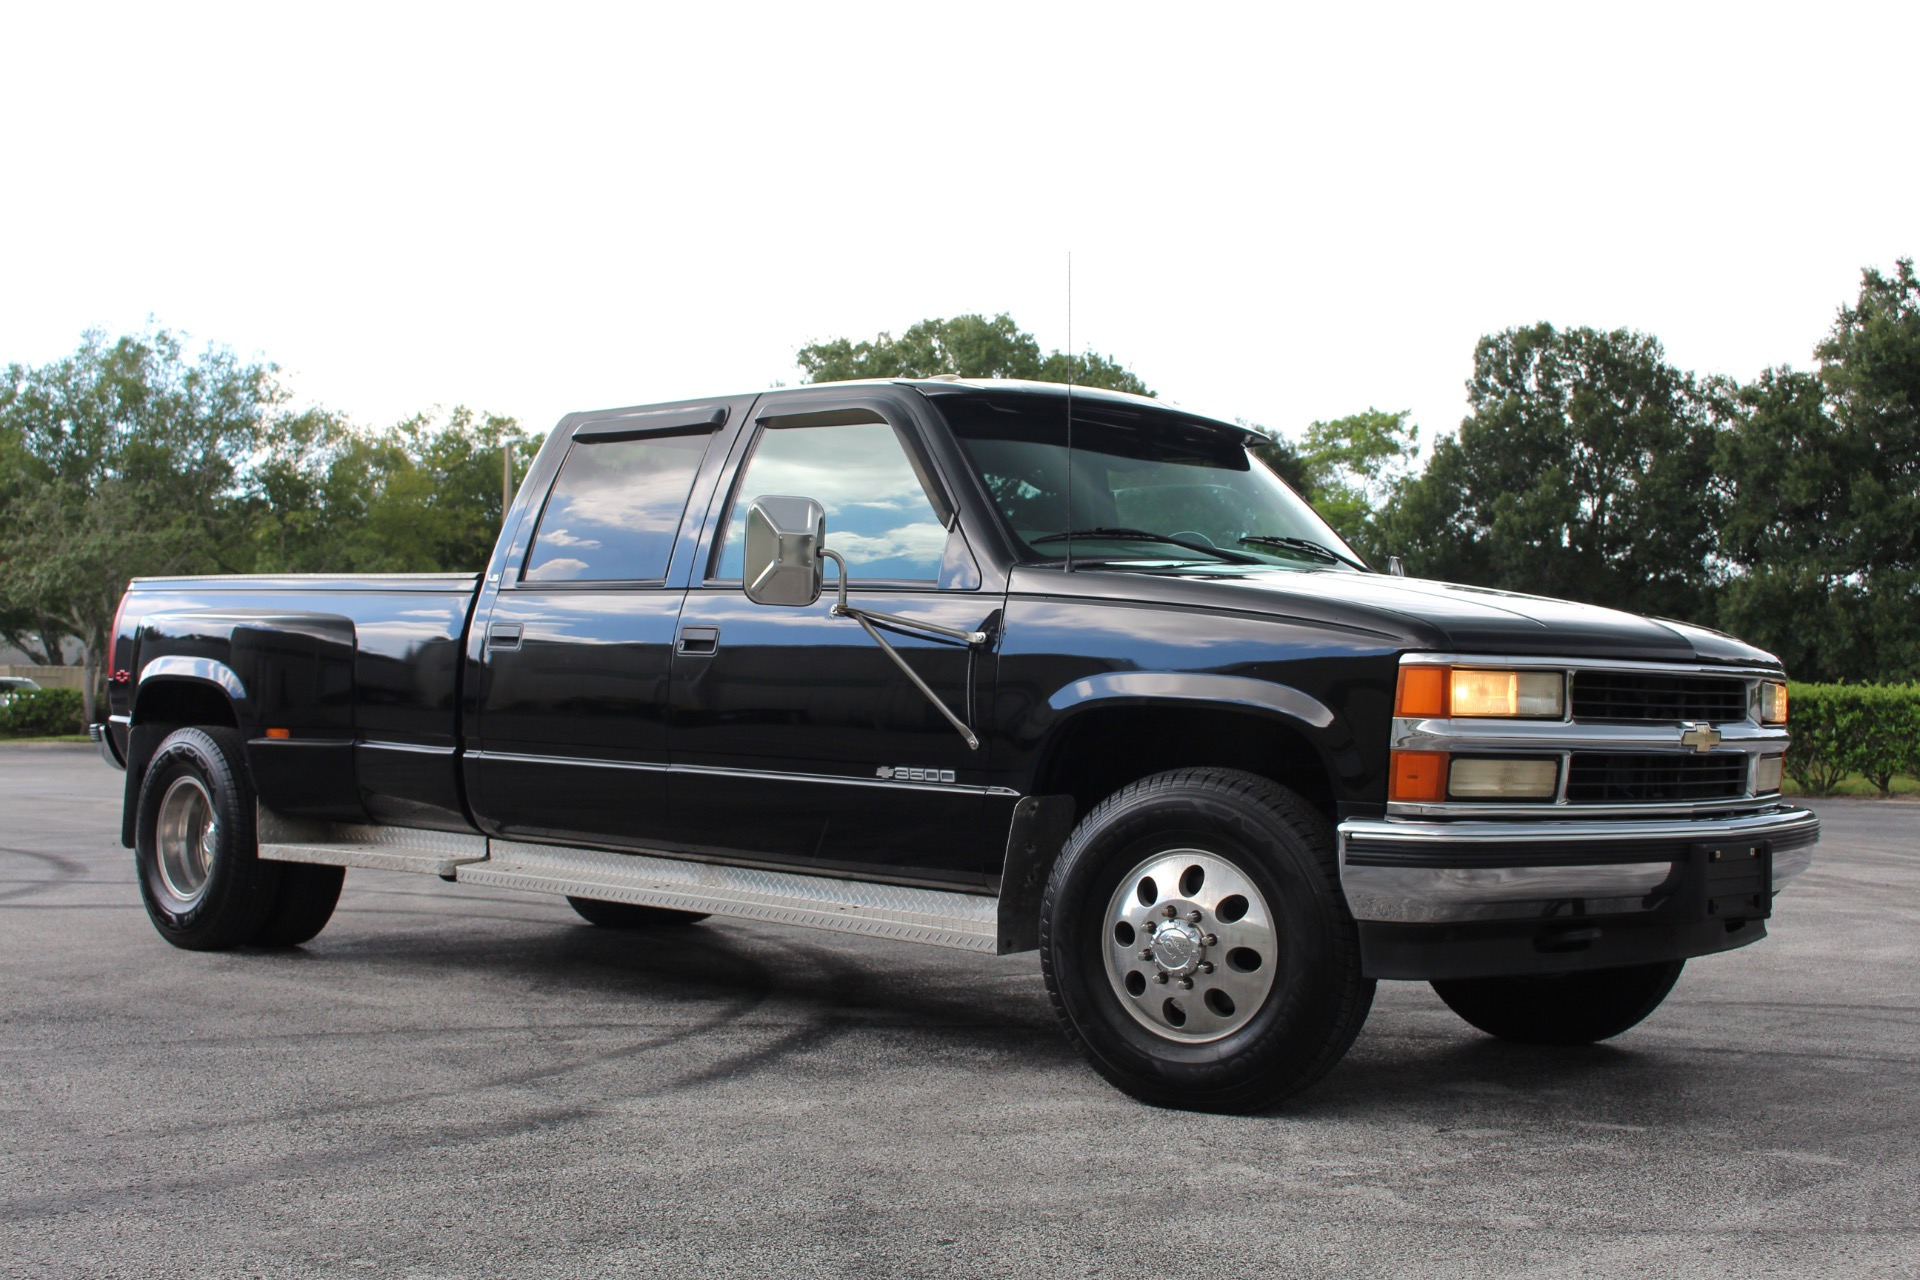 Used 2000 Chevrolet 3500 Crew Cab Long Bed for sale $11,997 at Track and Field Motors in Safety Harbor FL